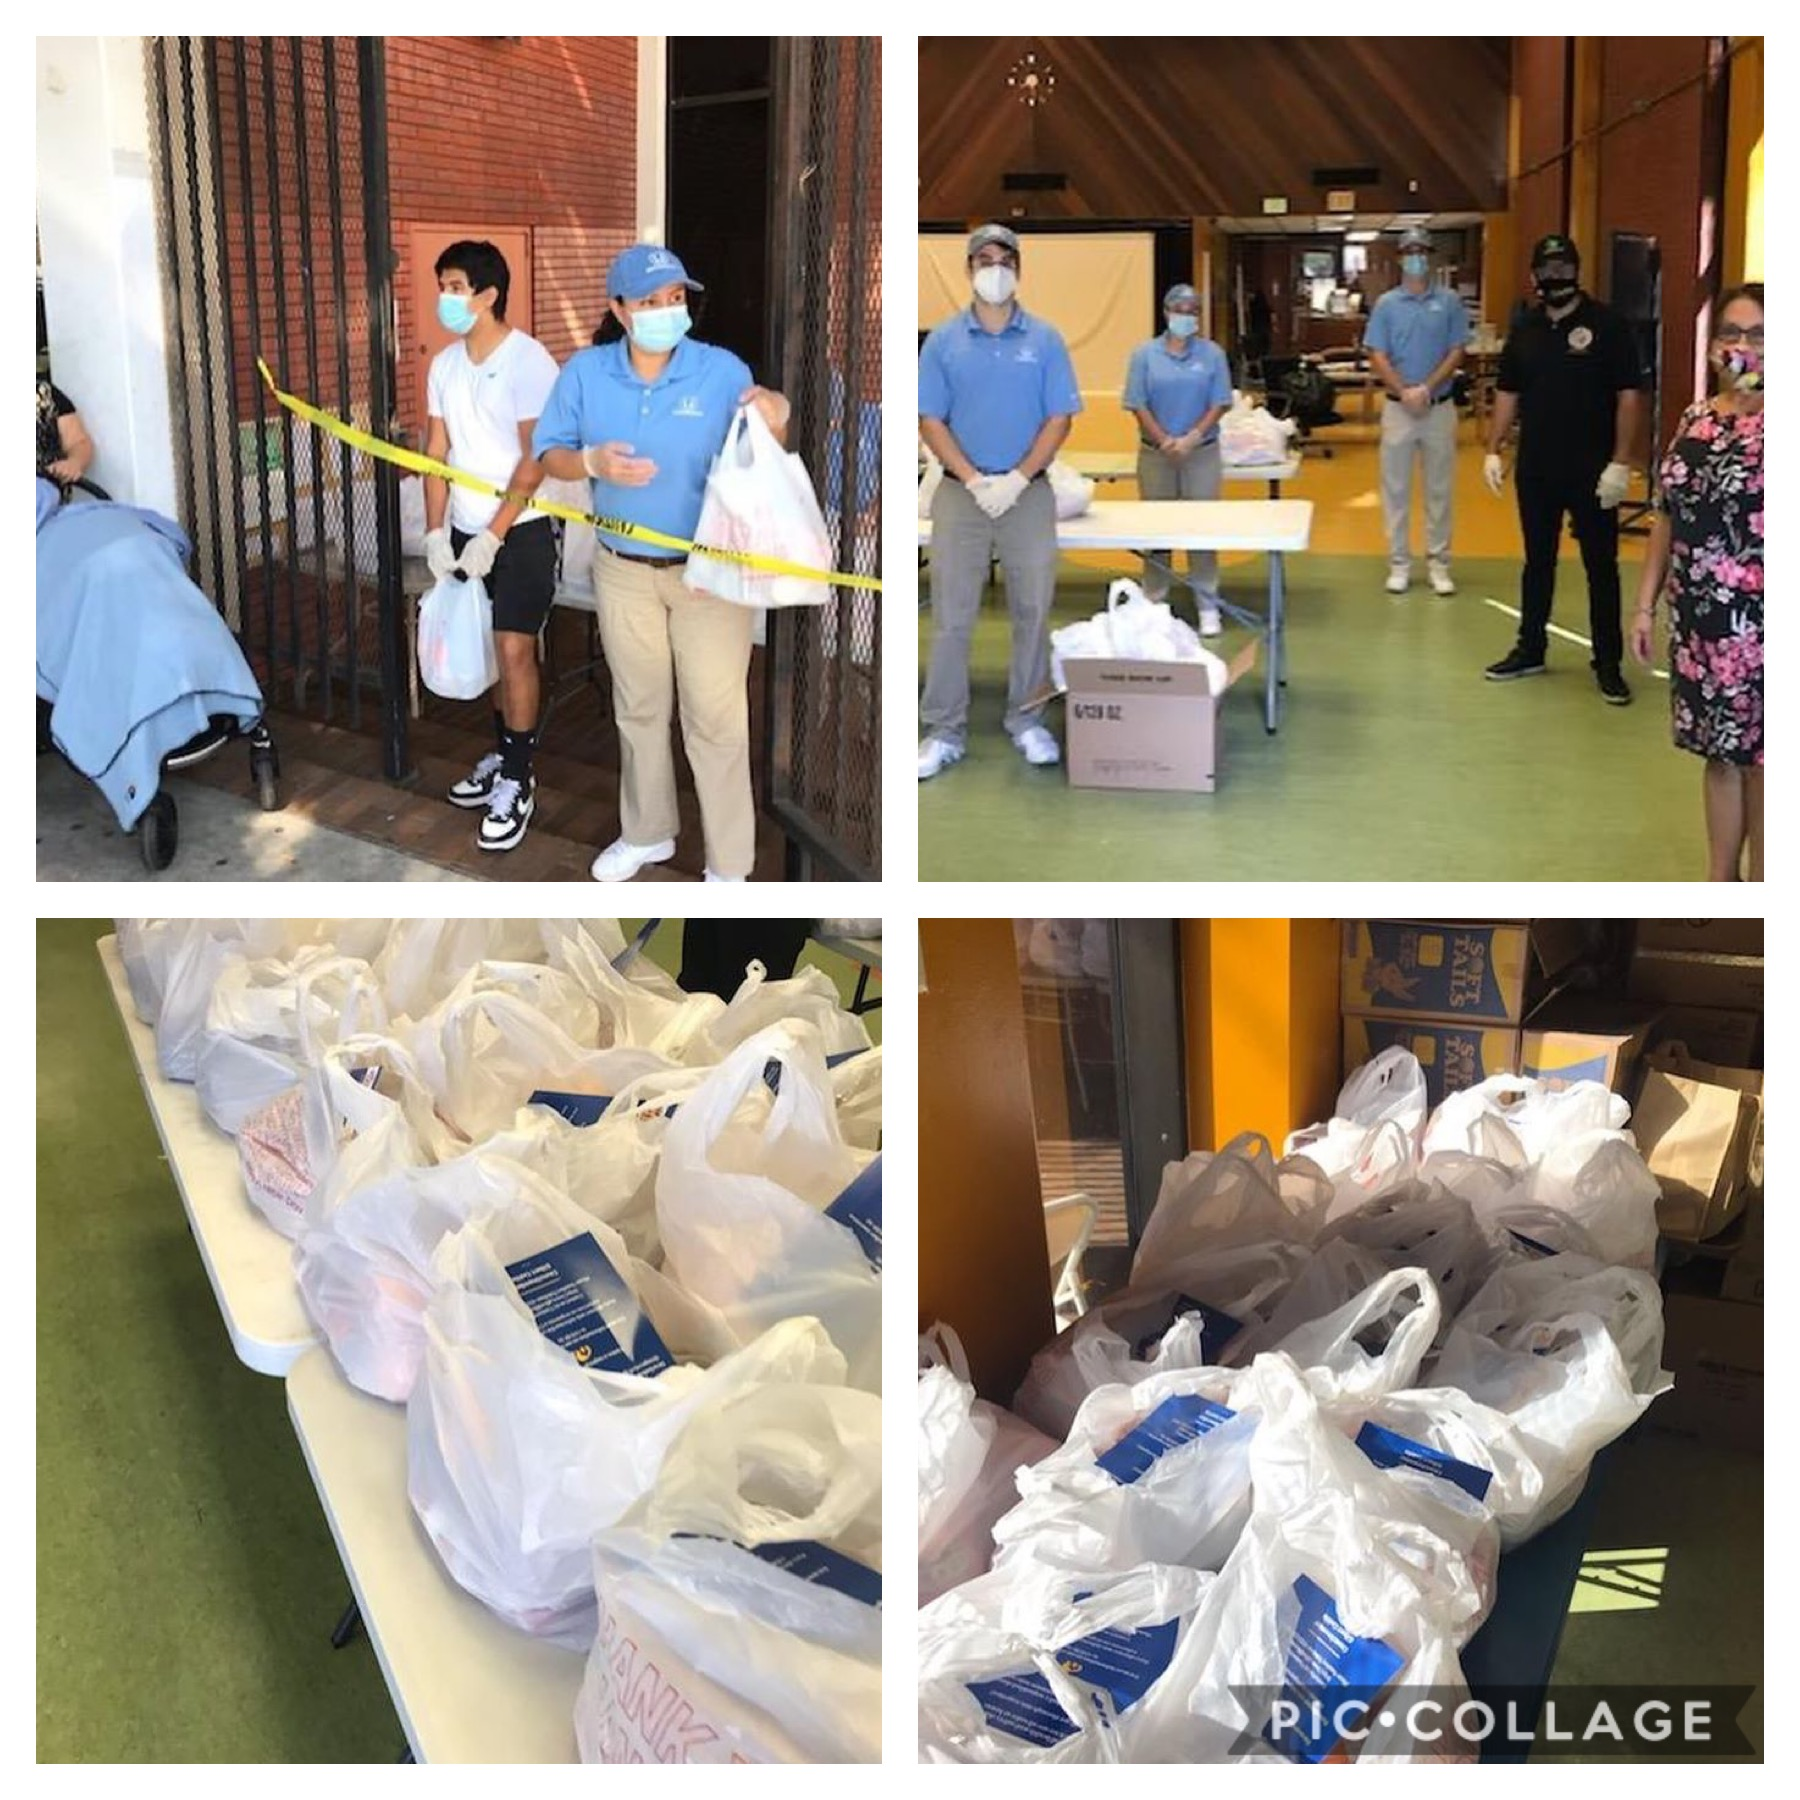 CCNP distributed bags of groceries in Westlake & special thanks to Honda's Random Acts of Kindness Team 5-21-2020 COLLAGE